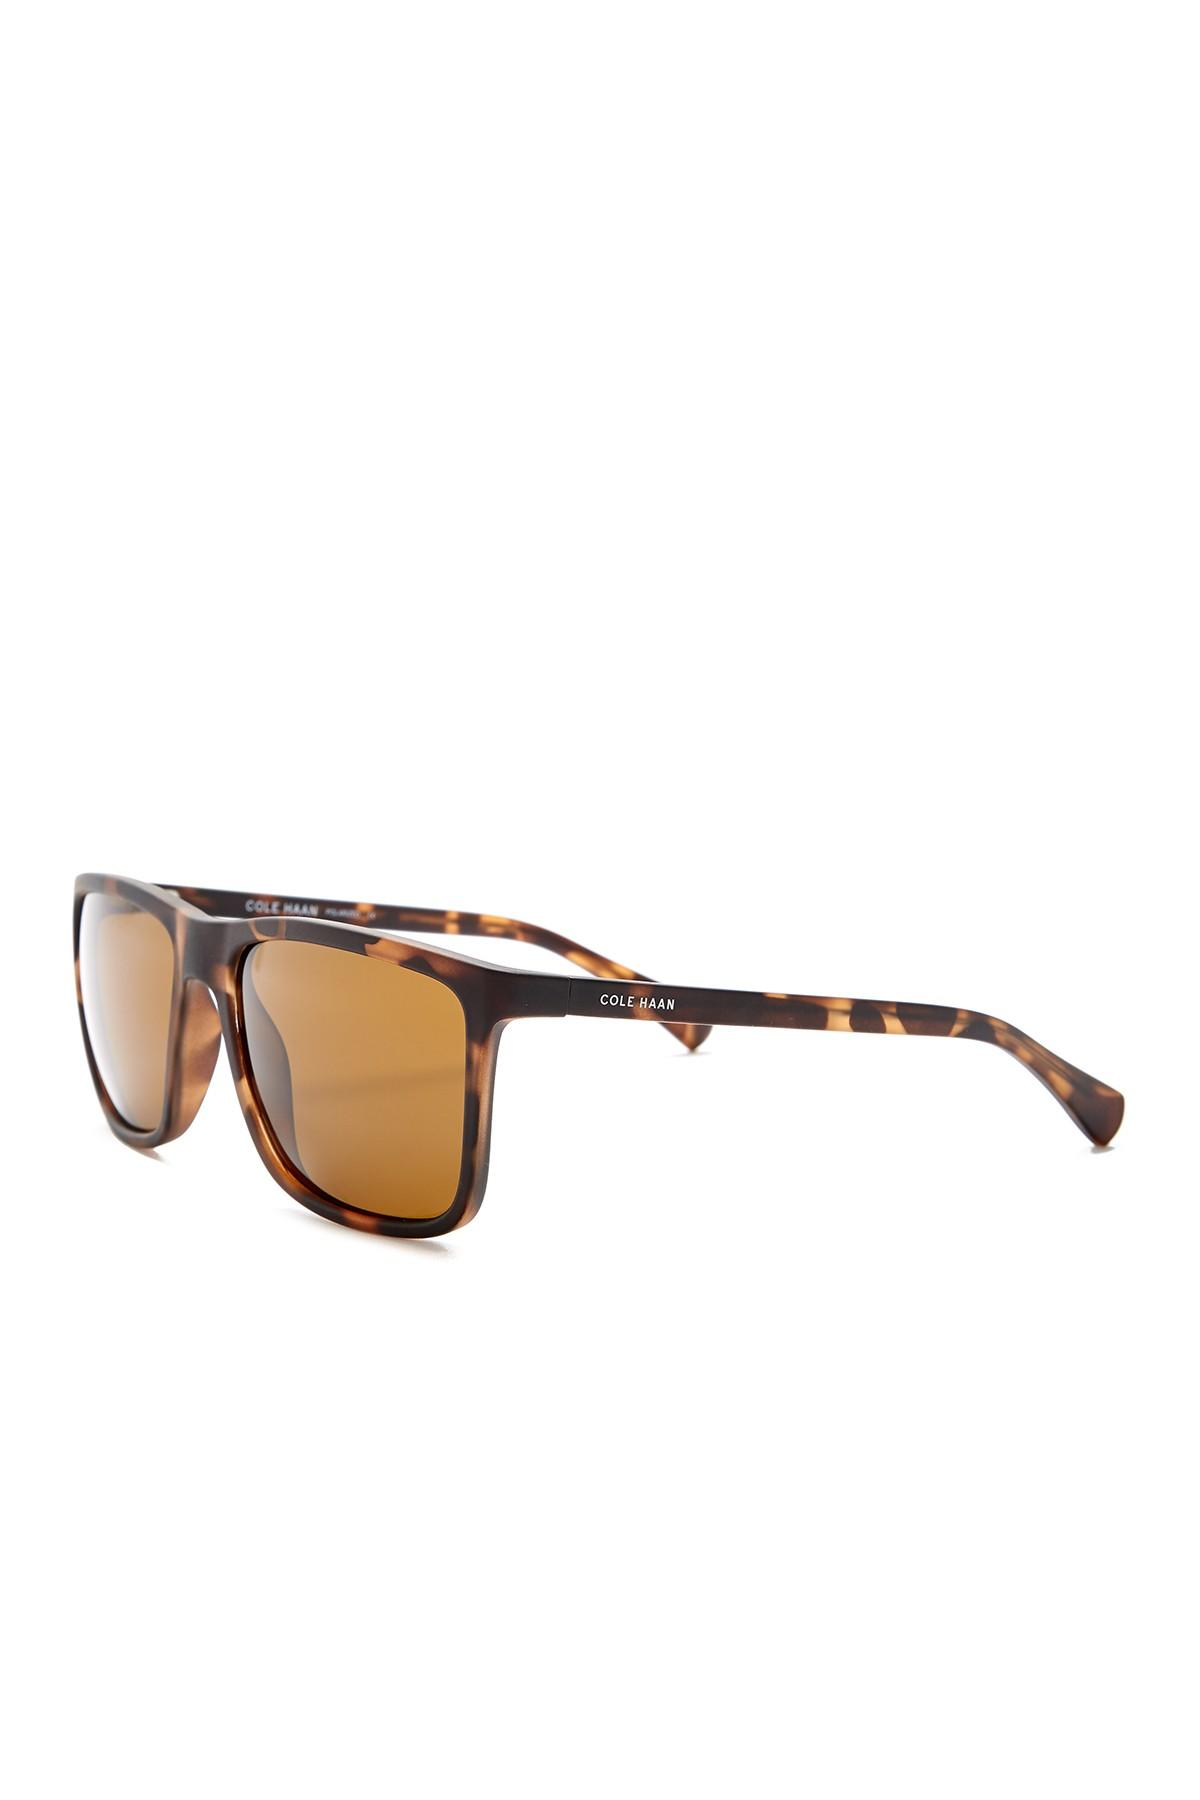 7c4c359b9d4f3 Cole Haan - Brown Polarized 56mm Square Sunglasses for Men - Lyst. View  fullscreen